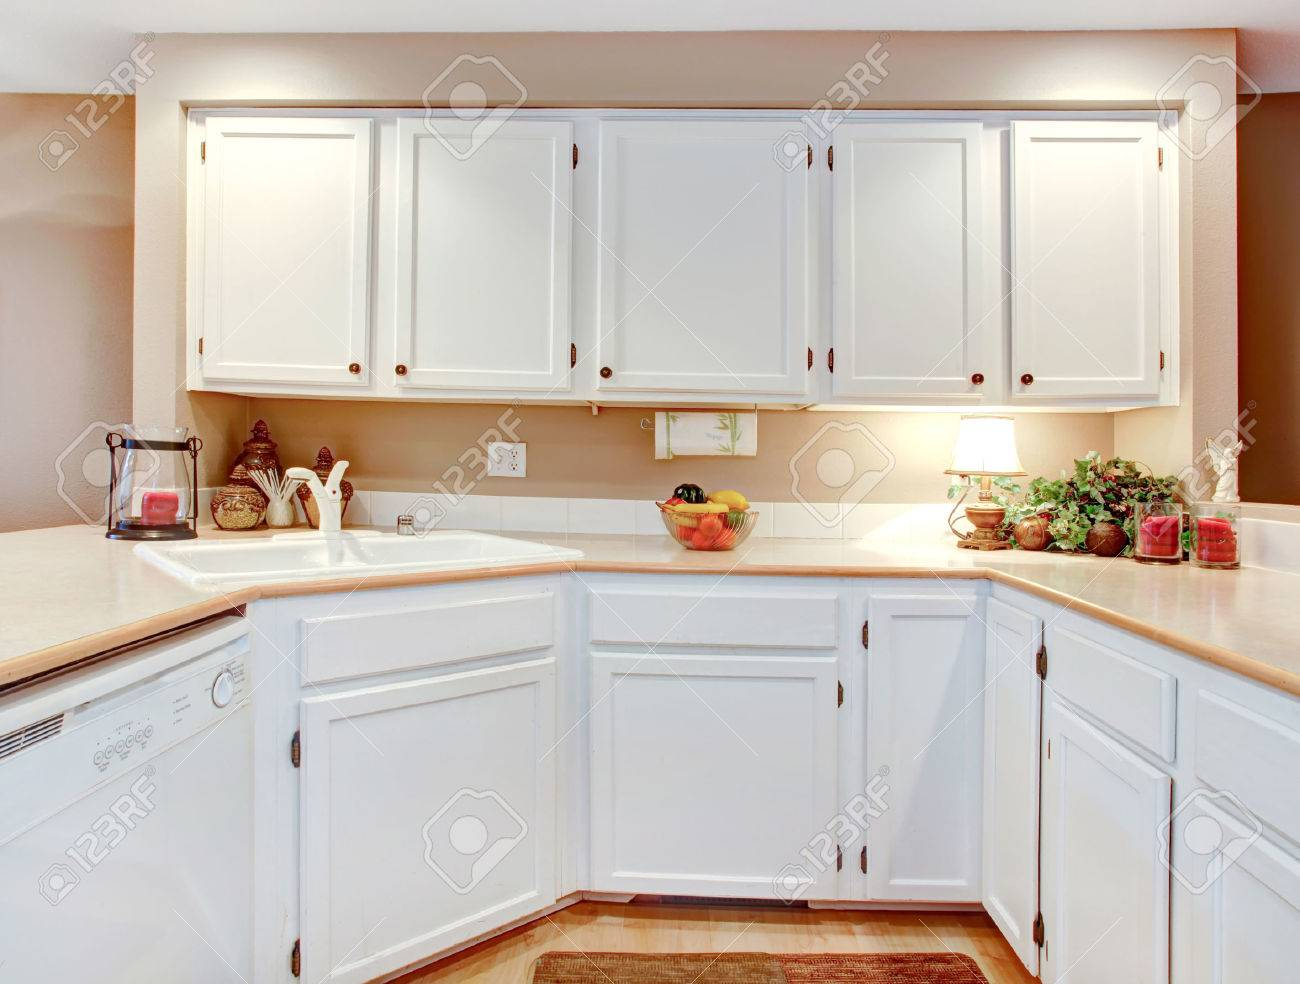 Bright Kitchen With White Wooden Cabinets And Beige Counter Tops